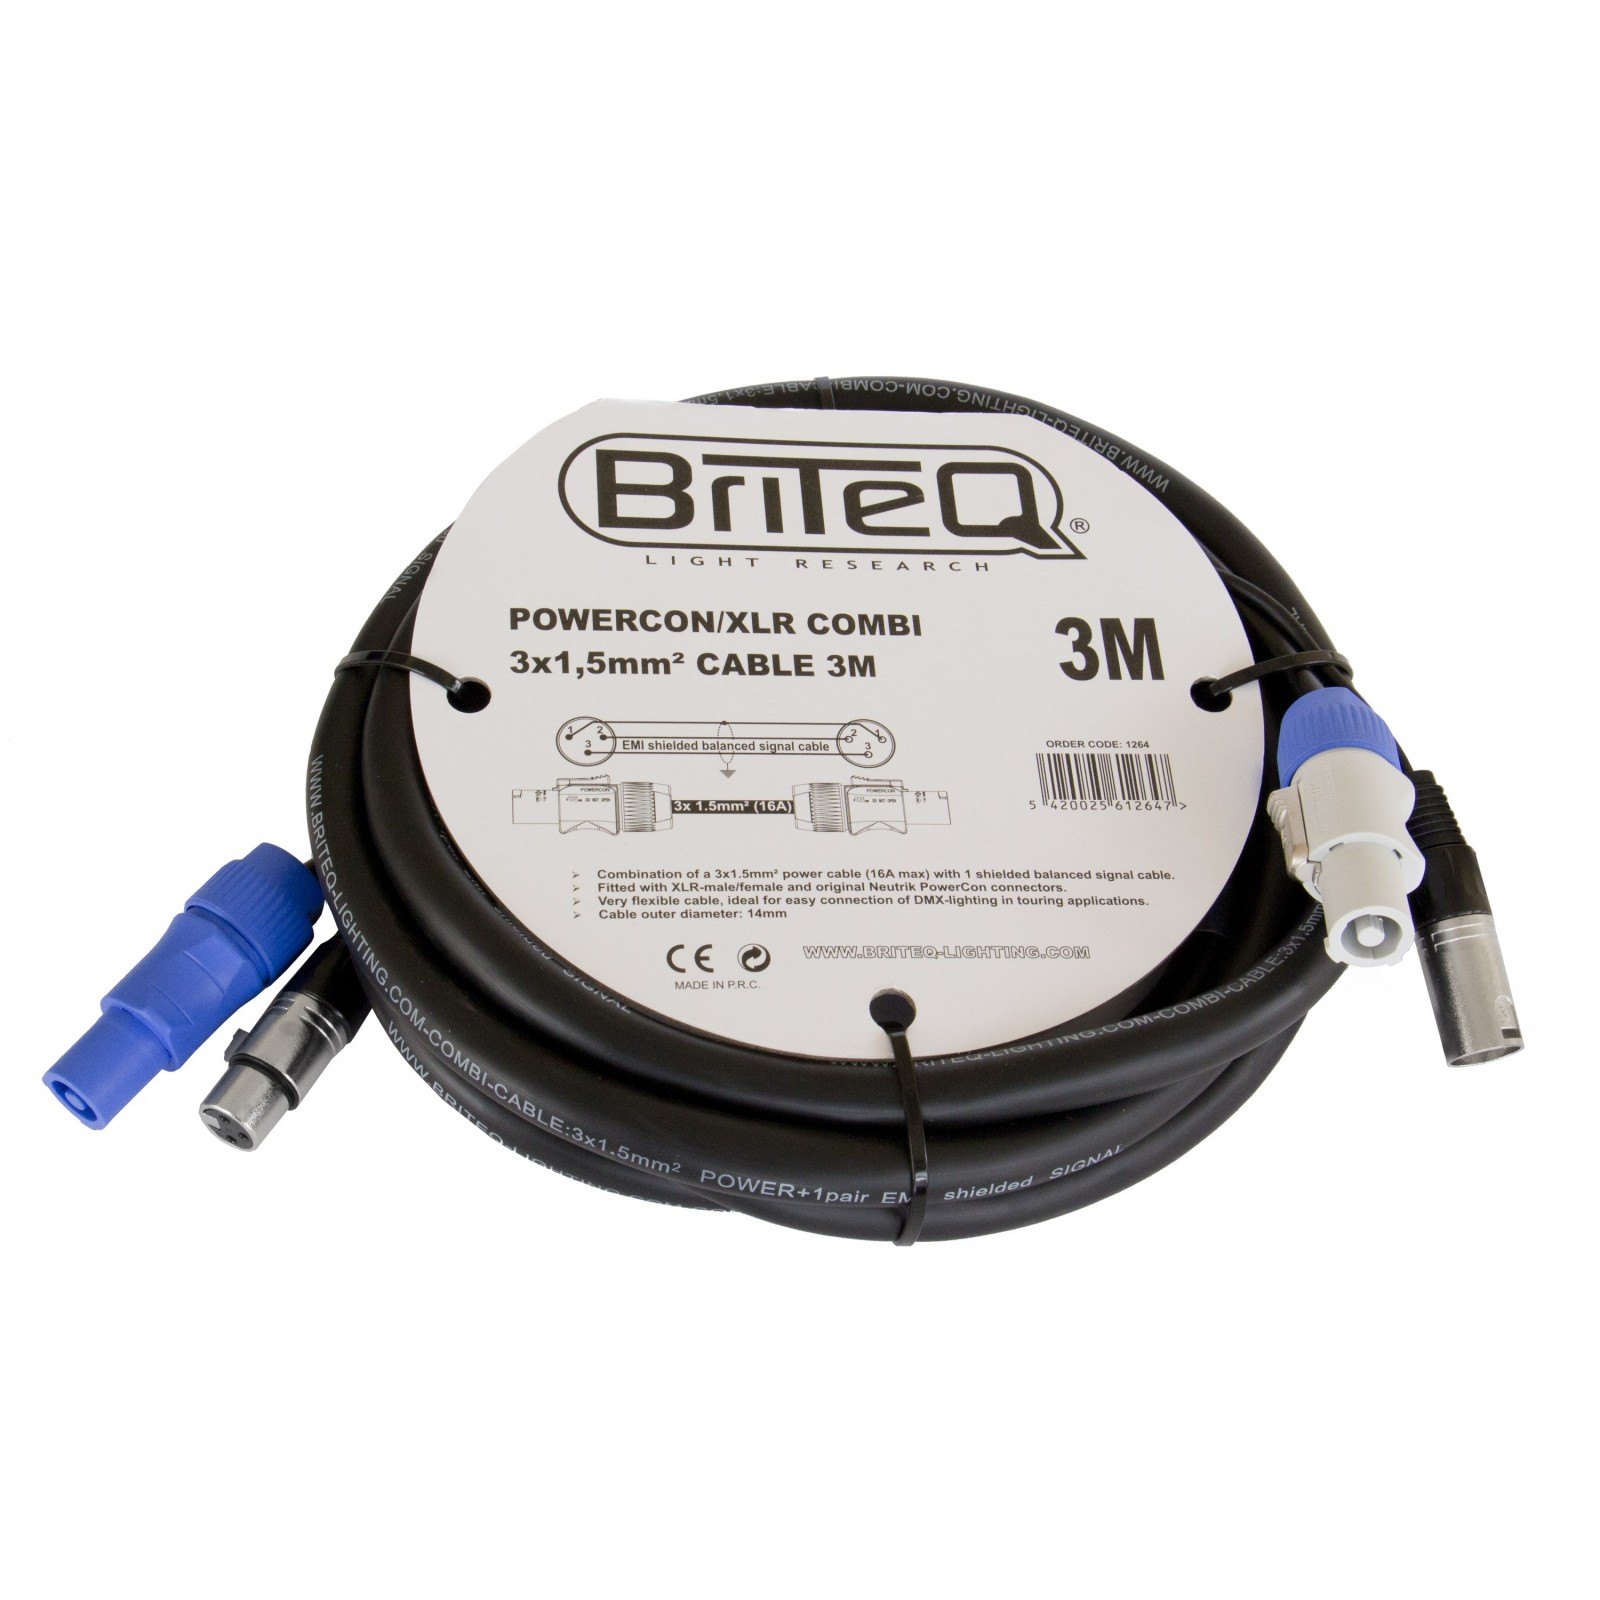 Briteq - Combined Cables - POWERCON/XLR COMBI 3x1,5mm² CABLE 3M